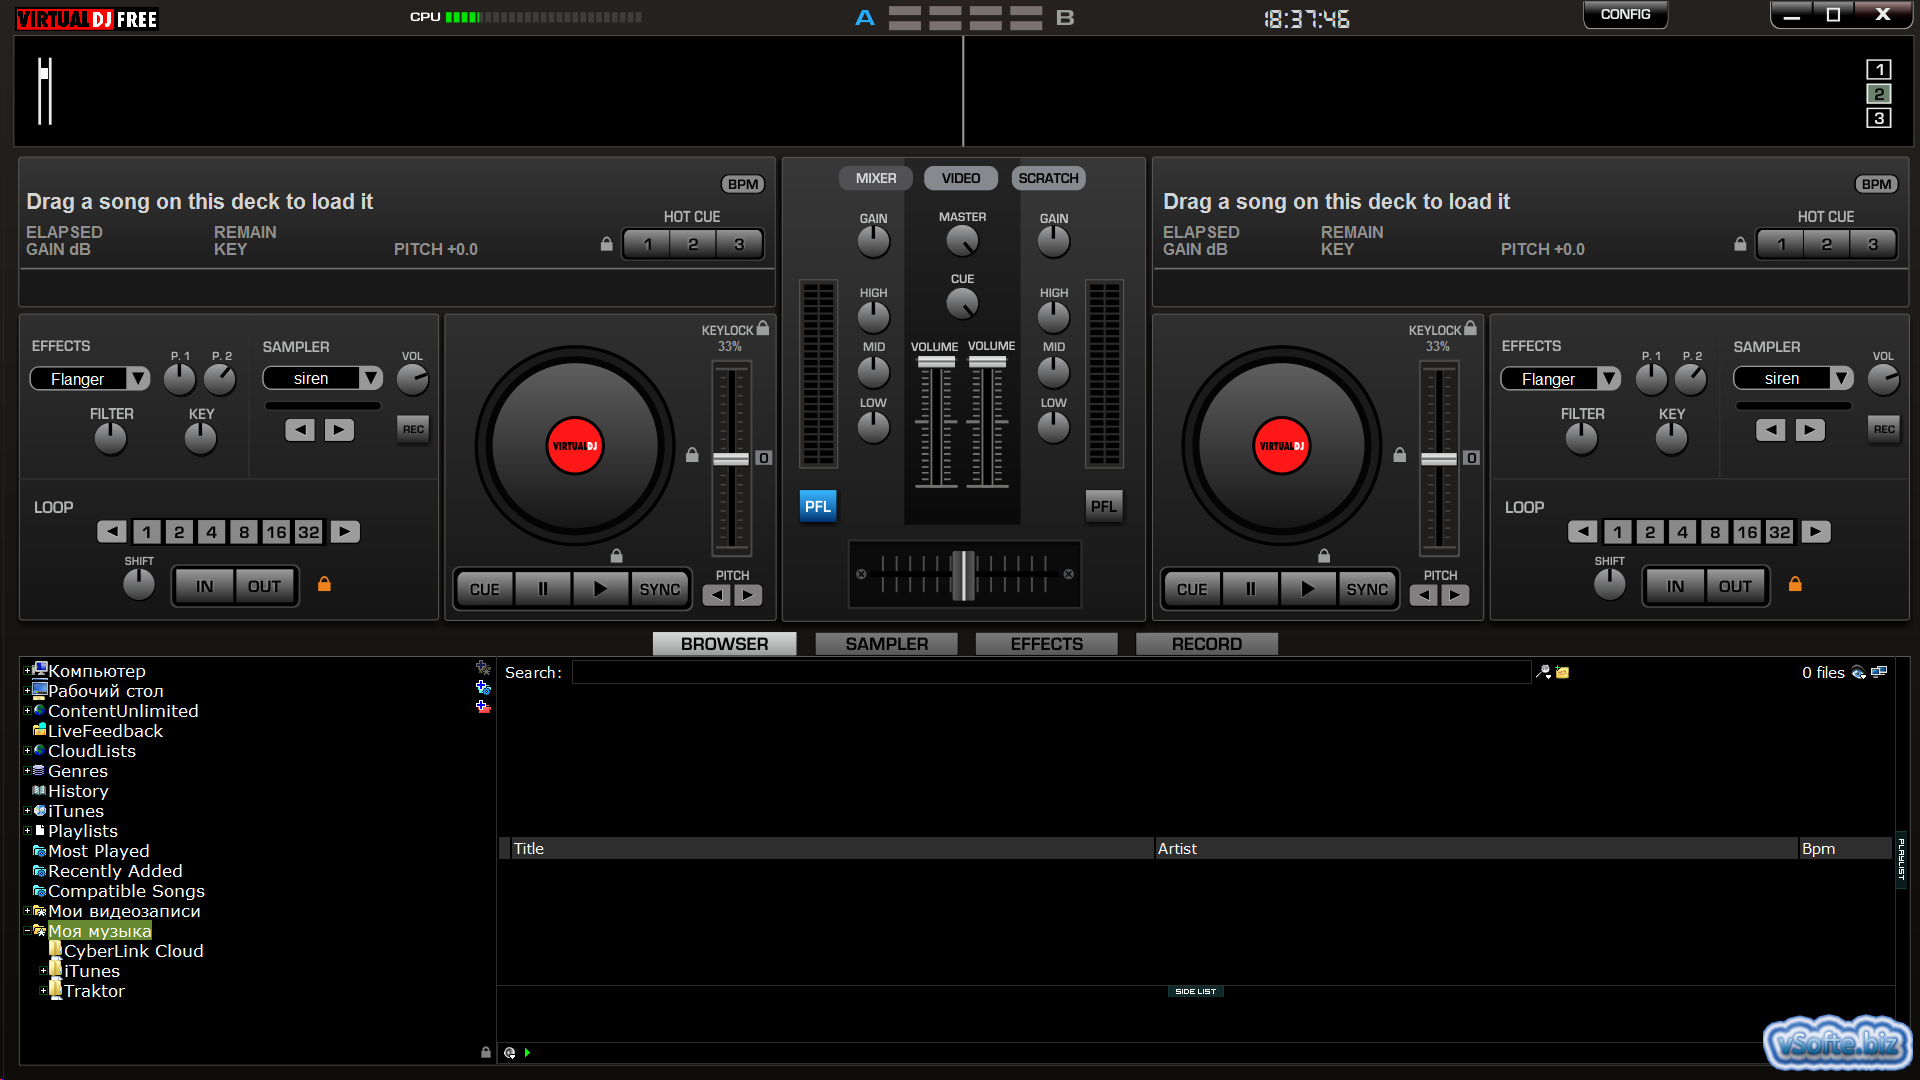 Virtual dj 8 free download for windows 7 | Virtual DJ 2019